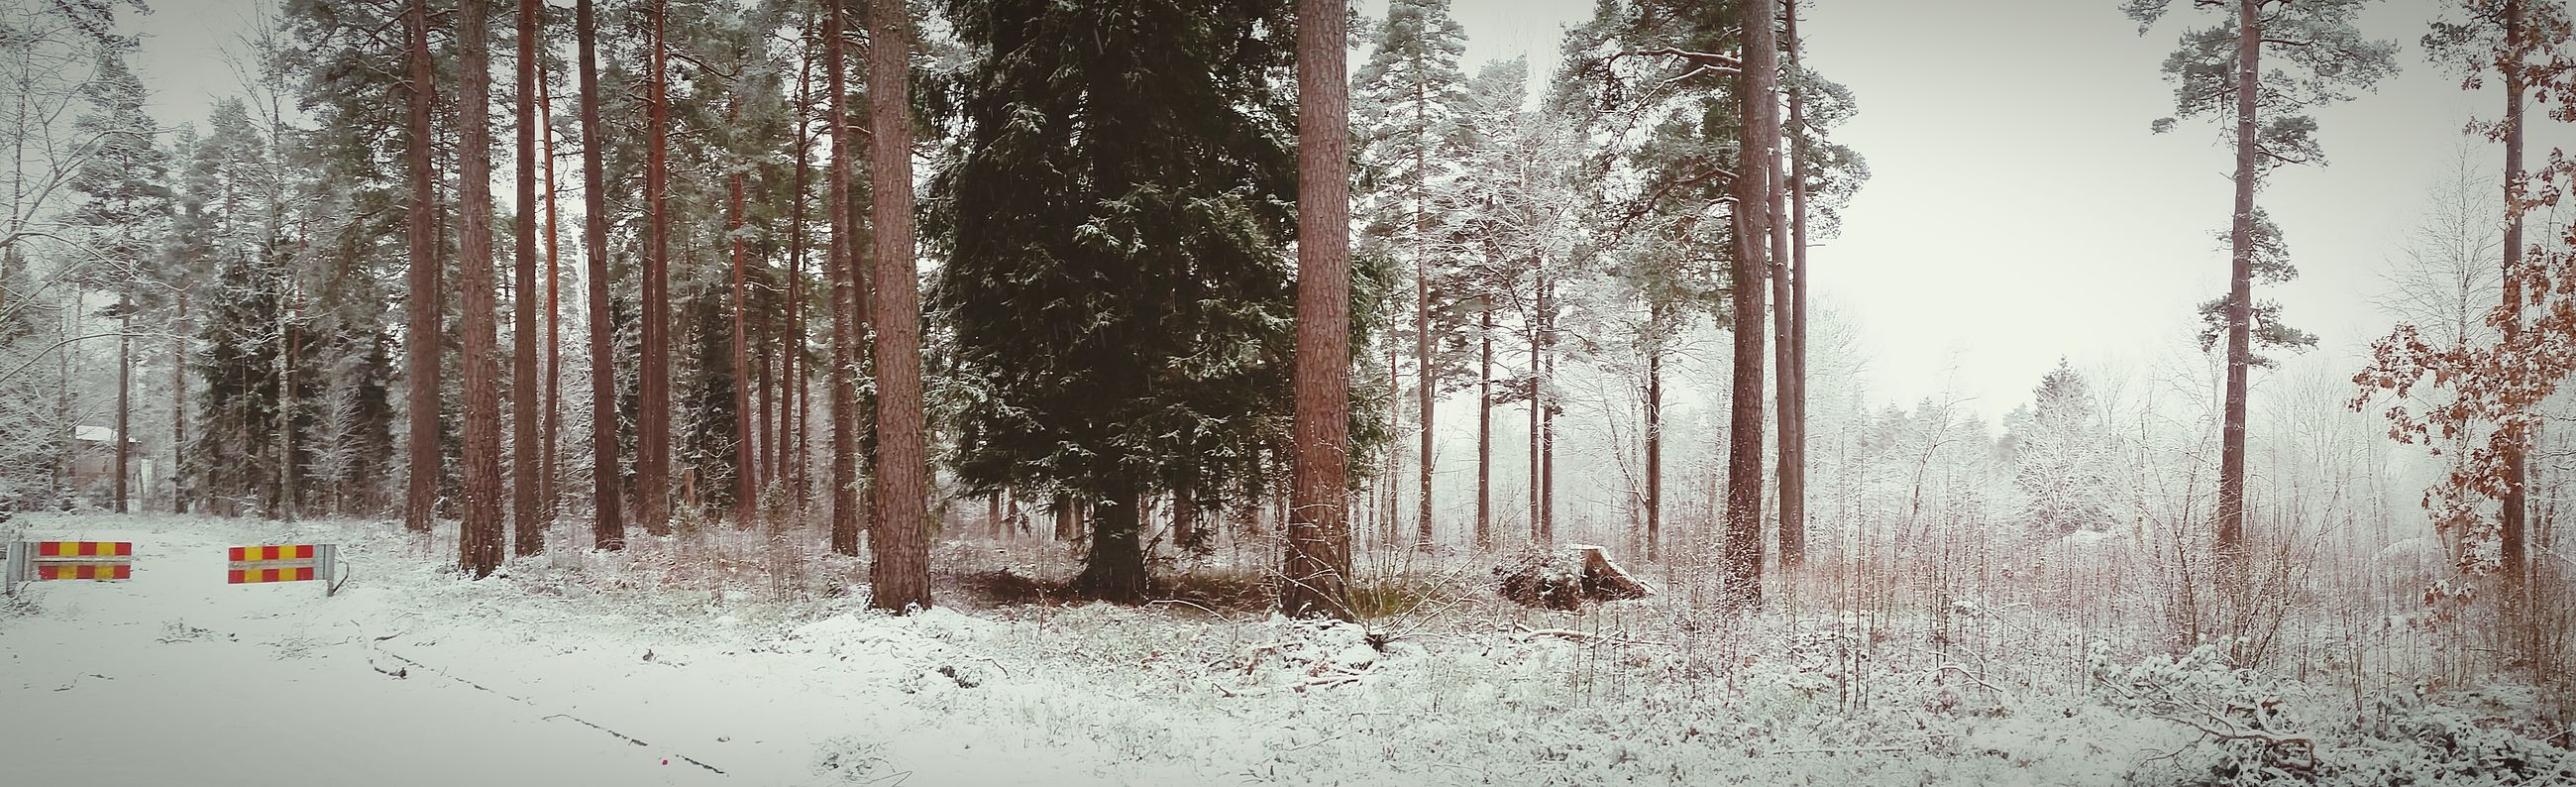 tree, tree trunk, tranquility, winter, nature, snow, forest, cold temperature, tranquil scene, woodland, growth, day, branch, covering, landscape, scenics, season, outdoors, beauty in nature, weather